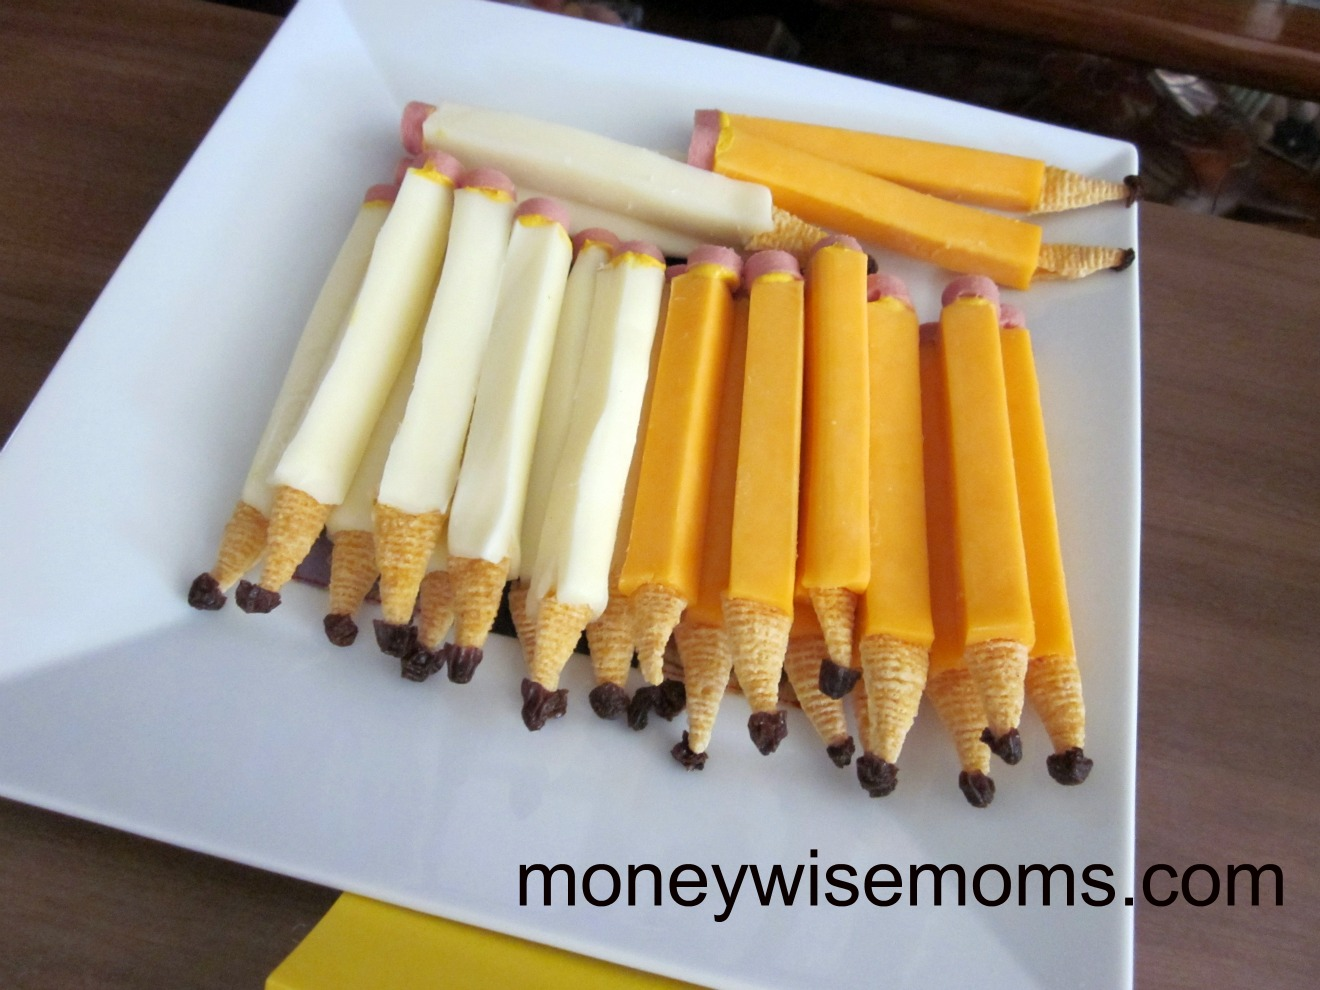 http://www.moneywisemoms.com/2011/08/string-cheese-pencils/